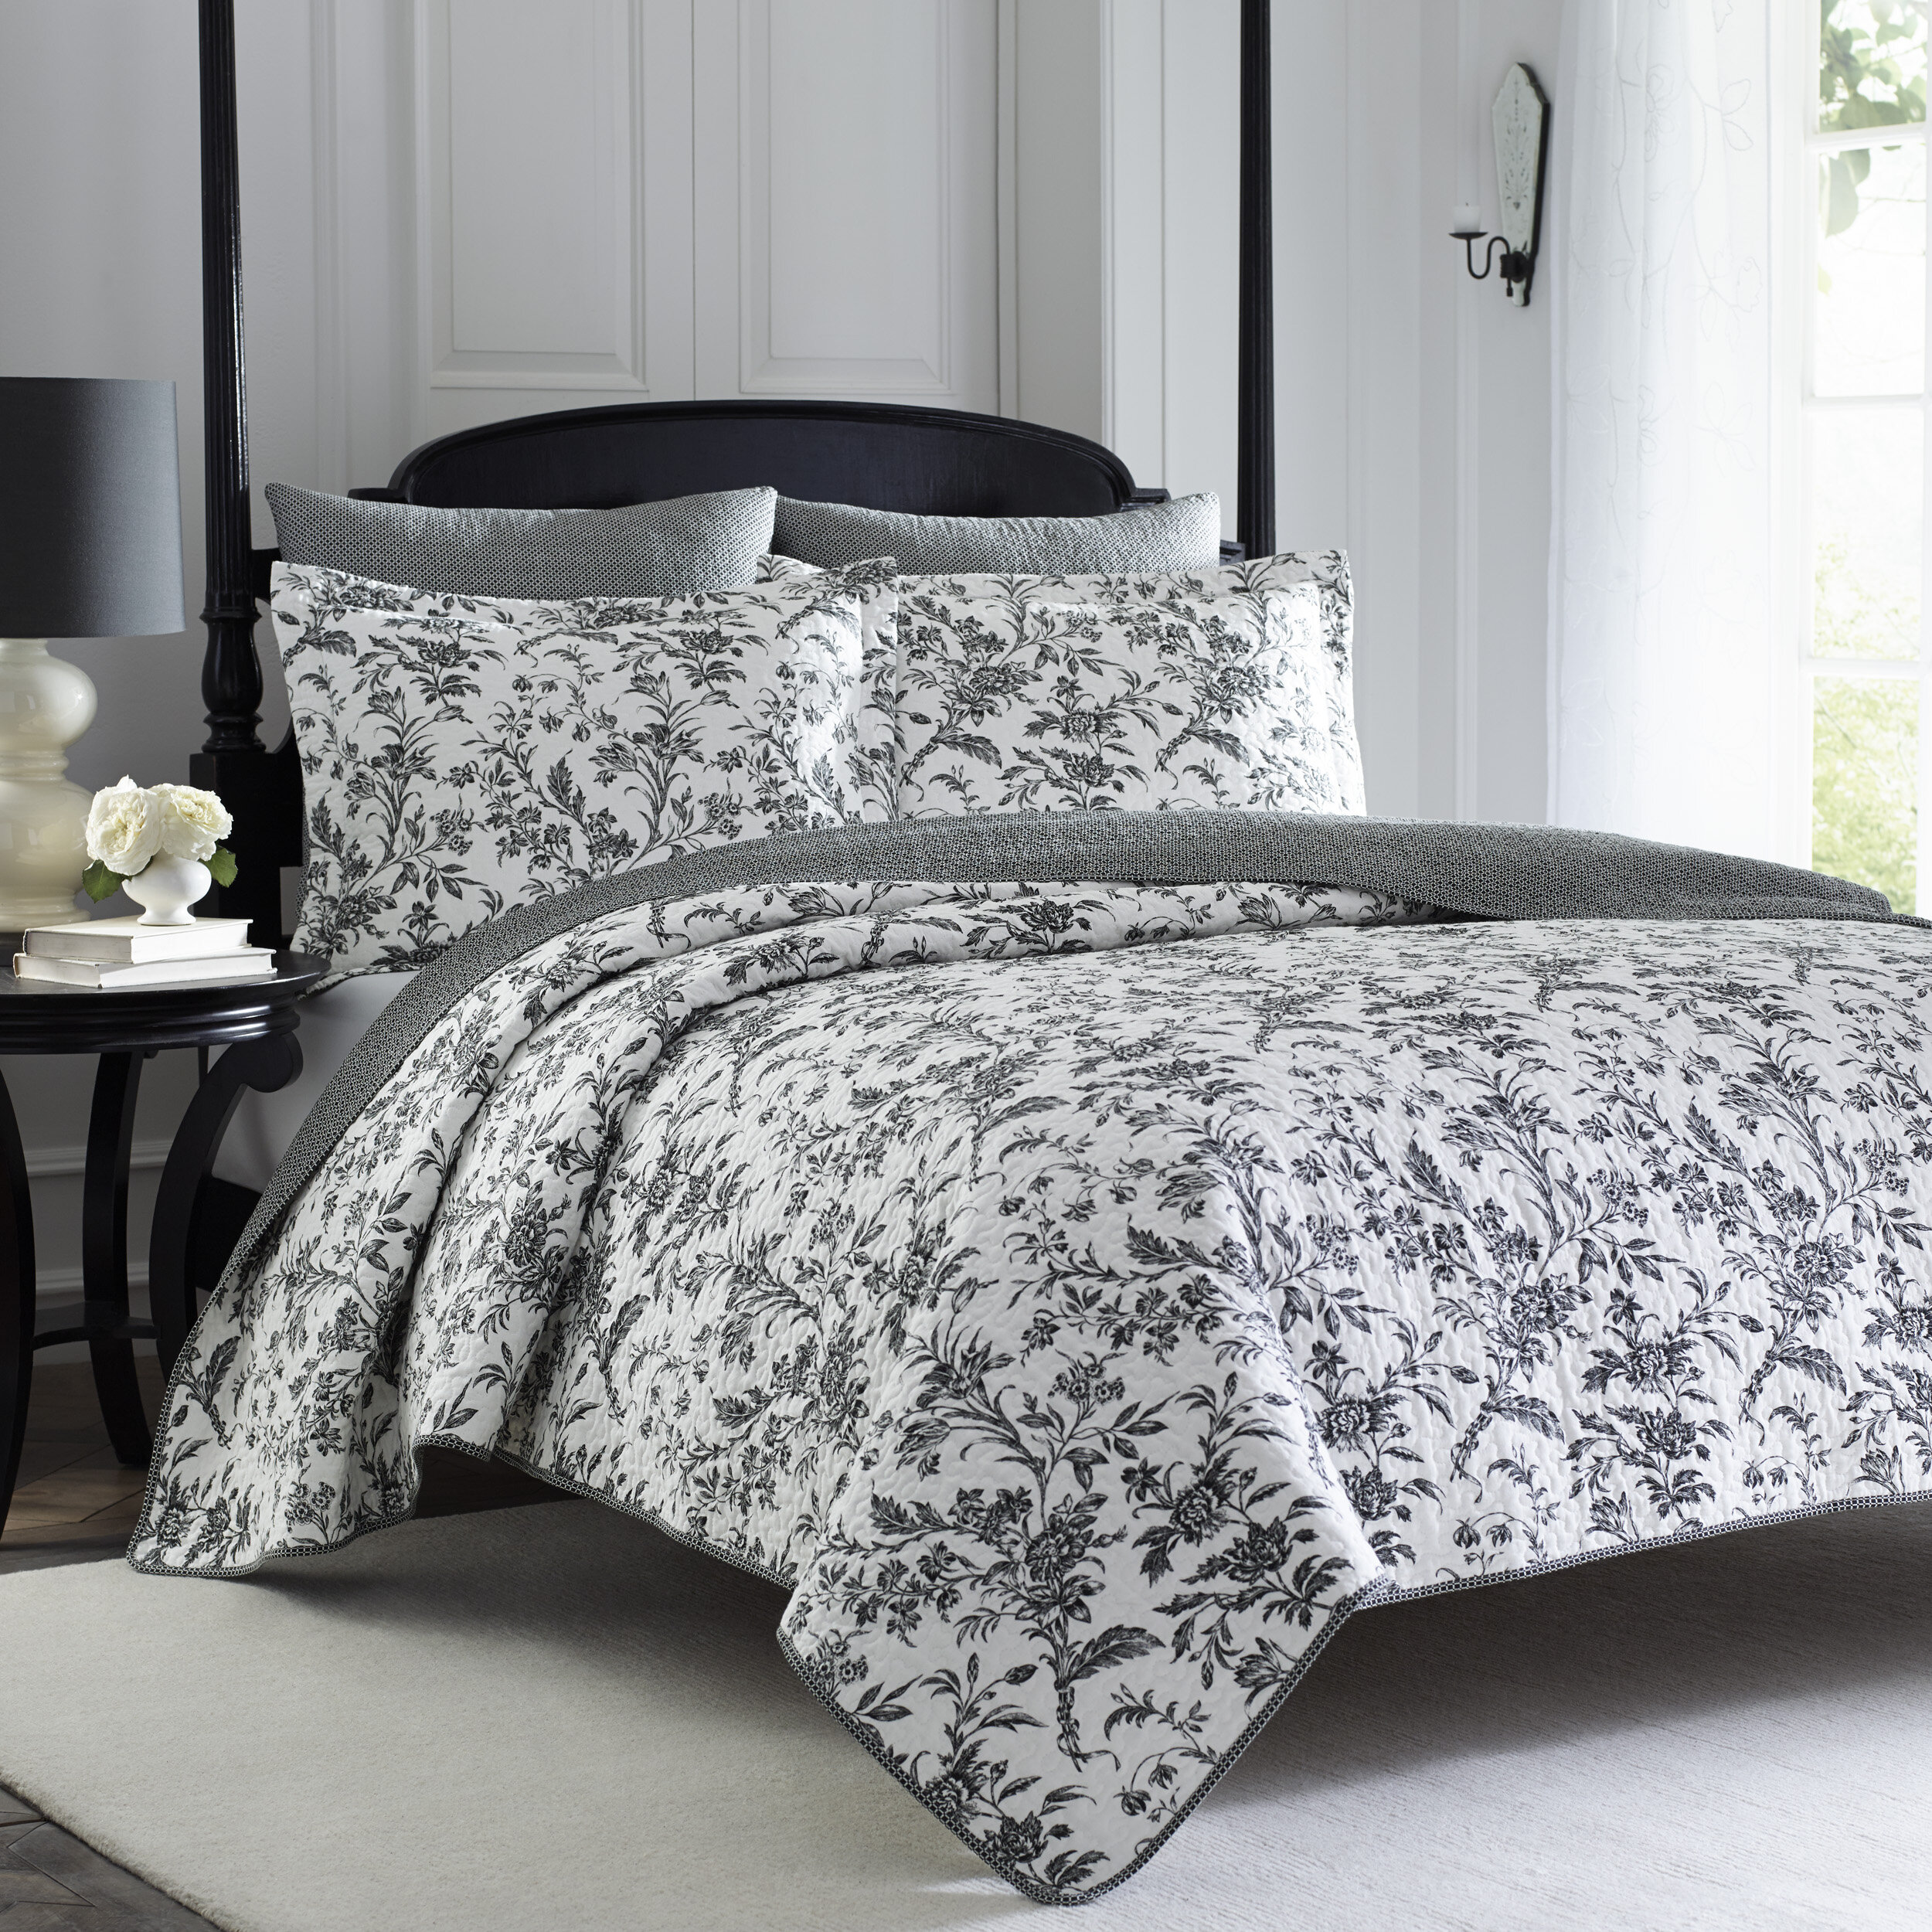 laura ashley home birch lane. Black Bedroom Furniture Sets. Home Design Ideas